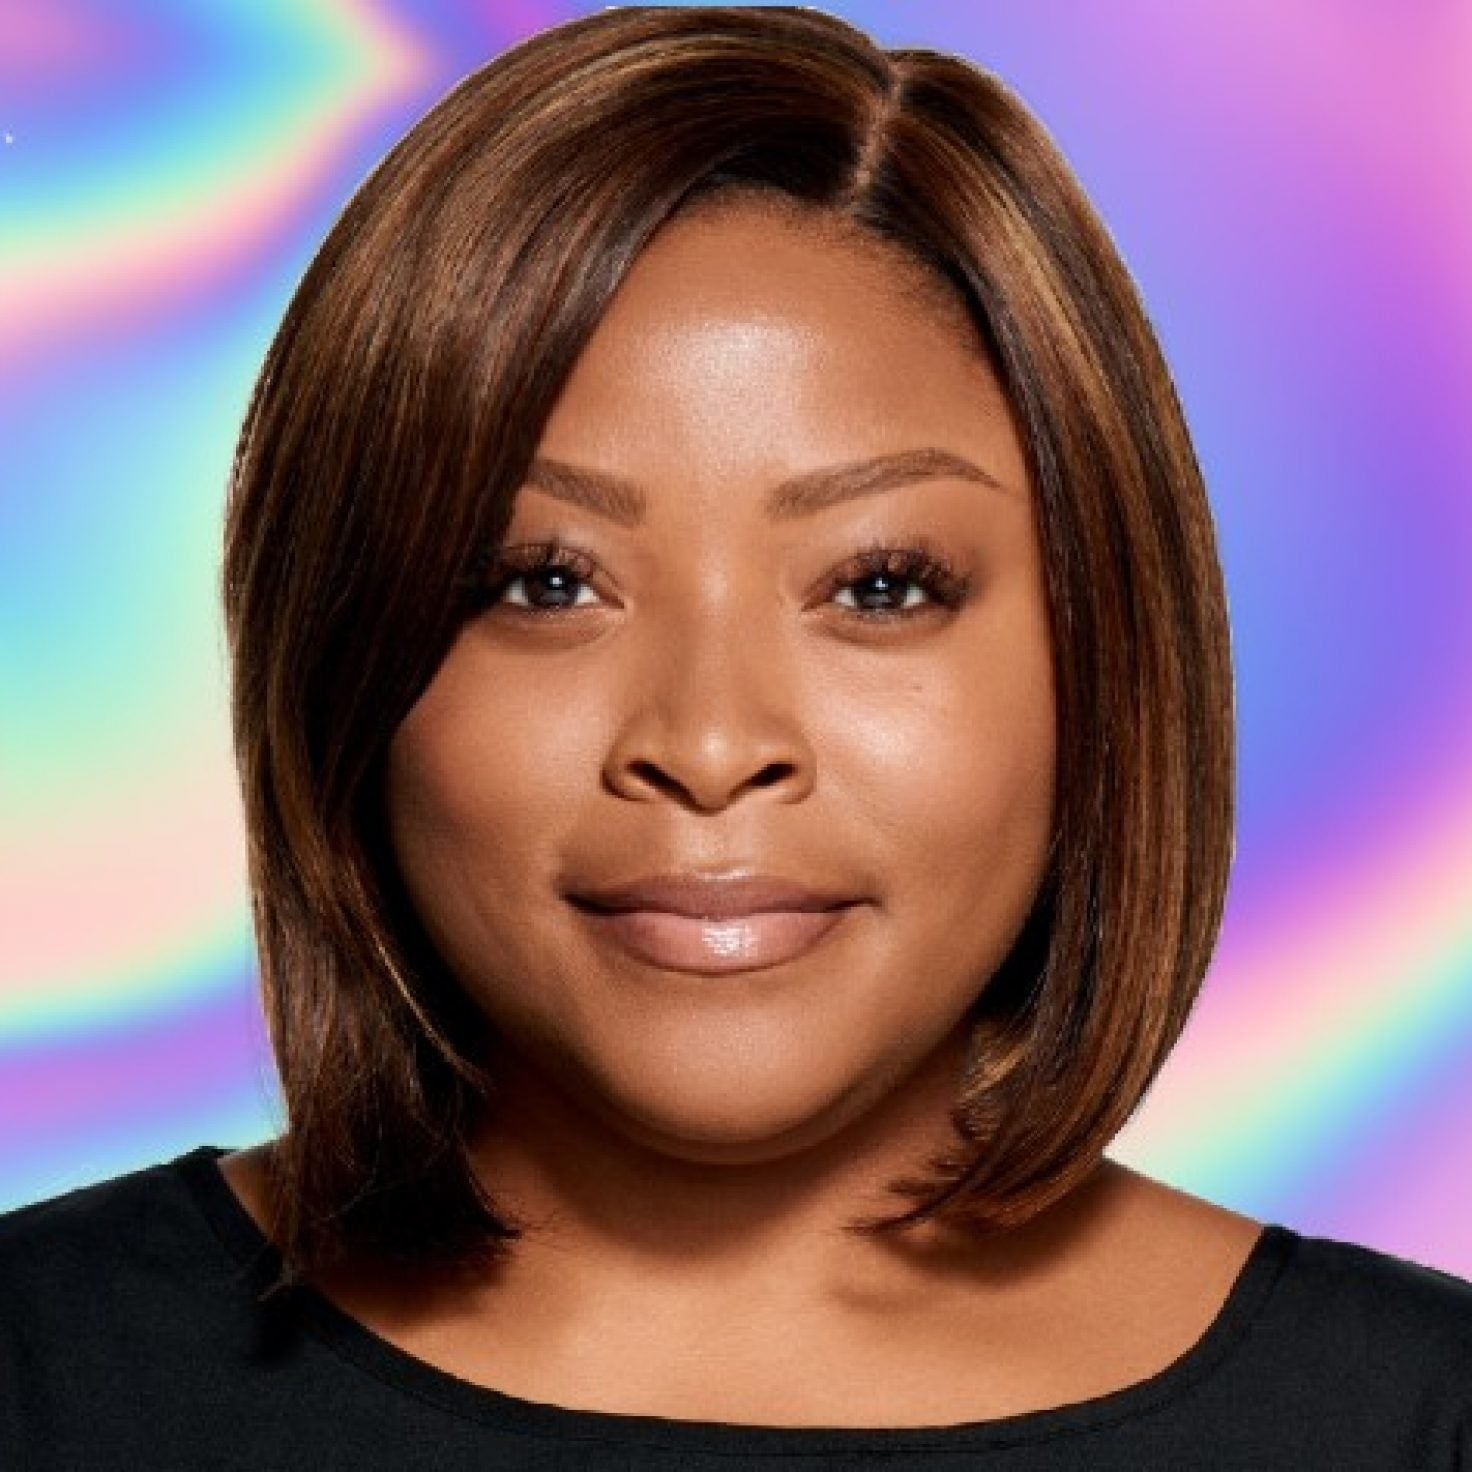 Meet The Black VP Who Launched A Foundation Line With 100 Shades